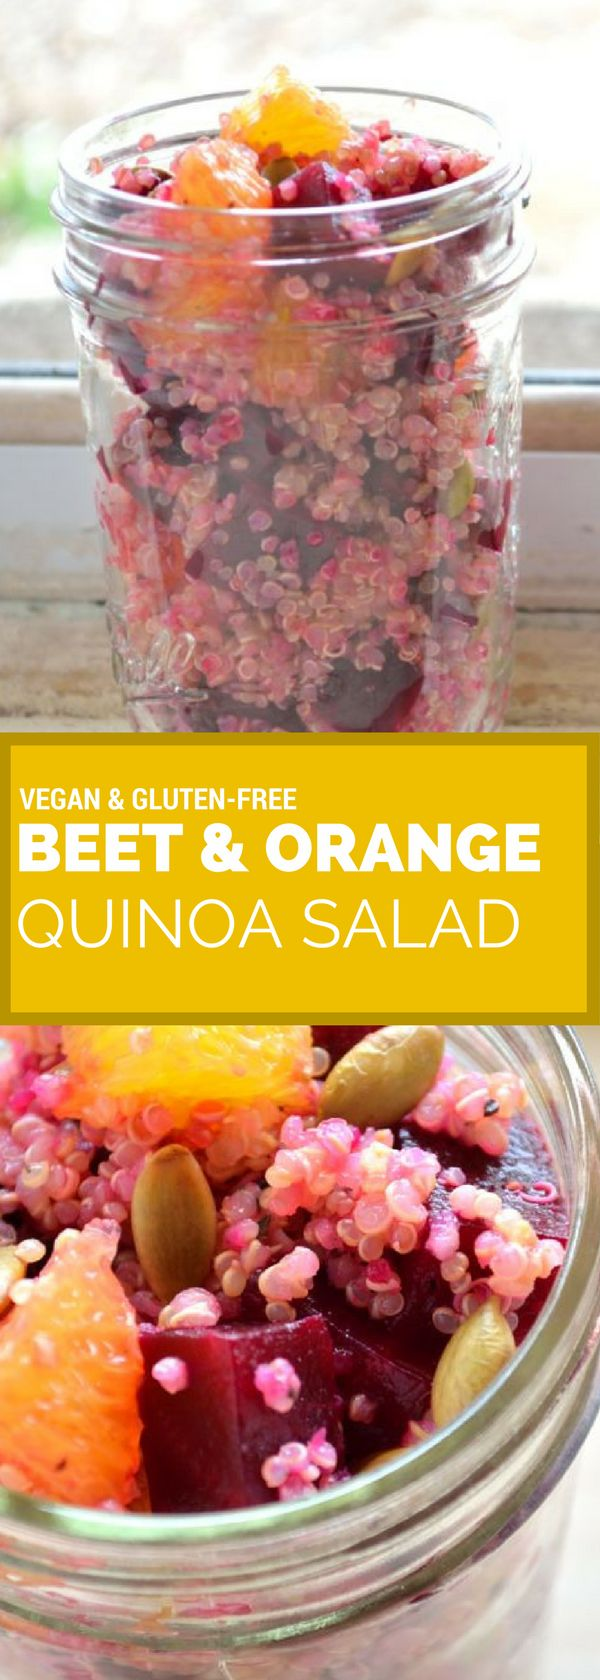 This vegan recipe for roasted beet, blood orange, and quinoa salad is full of protein, flavor, and texture. Dress it with your favorite vinaigrette and top with roasted pumpkin seeds.